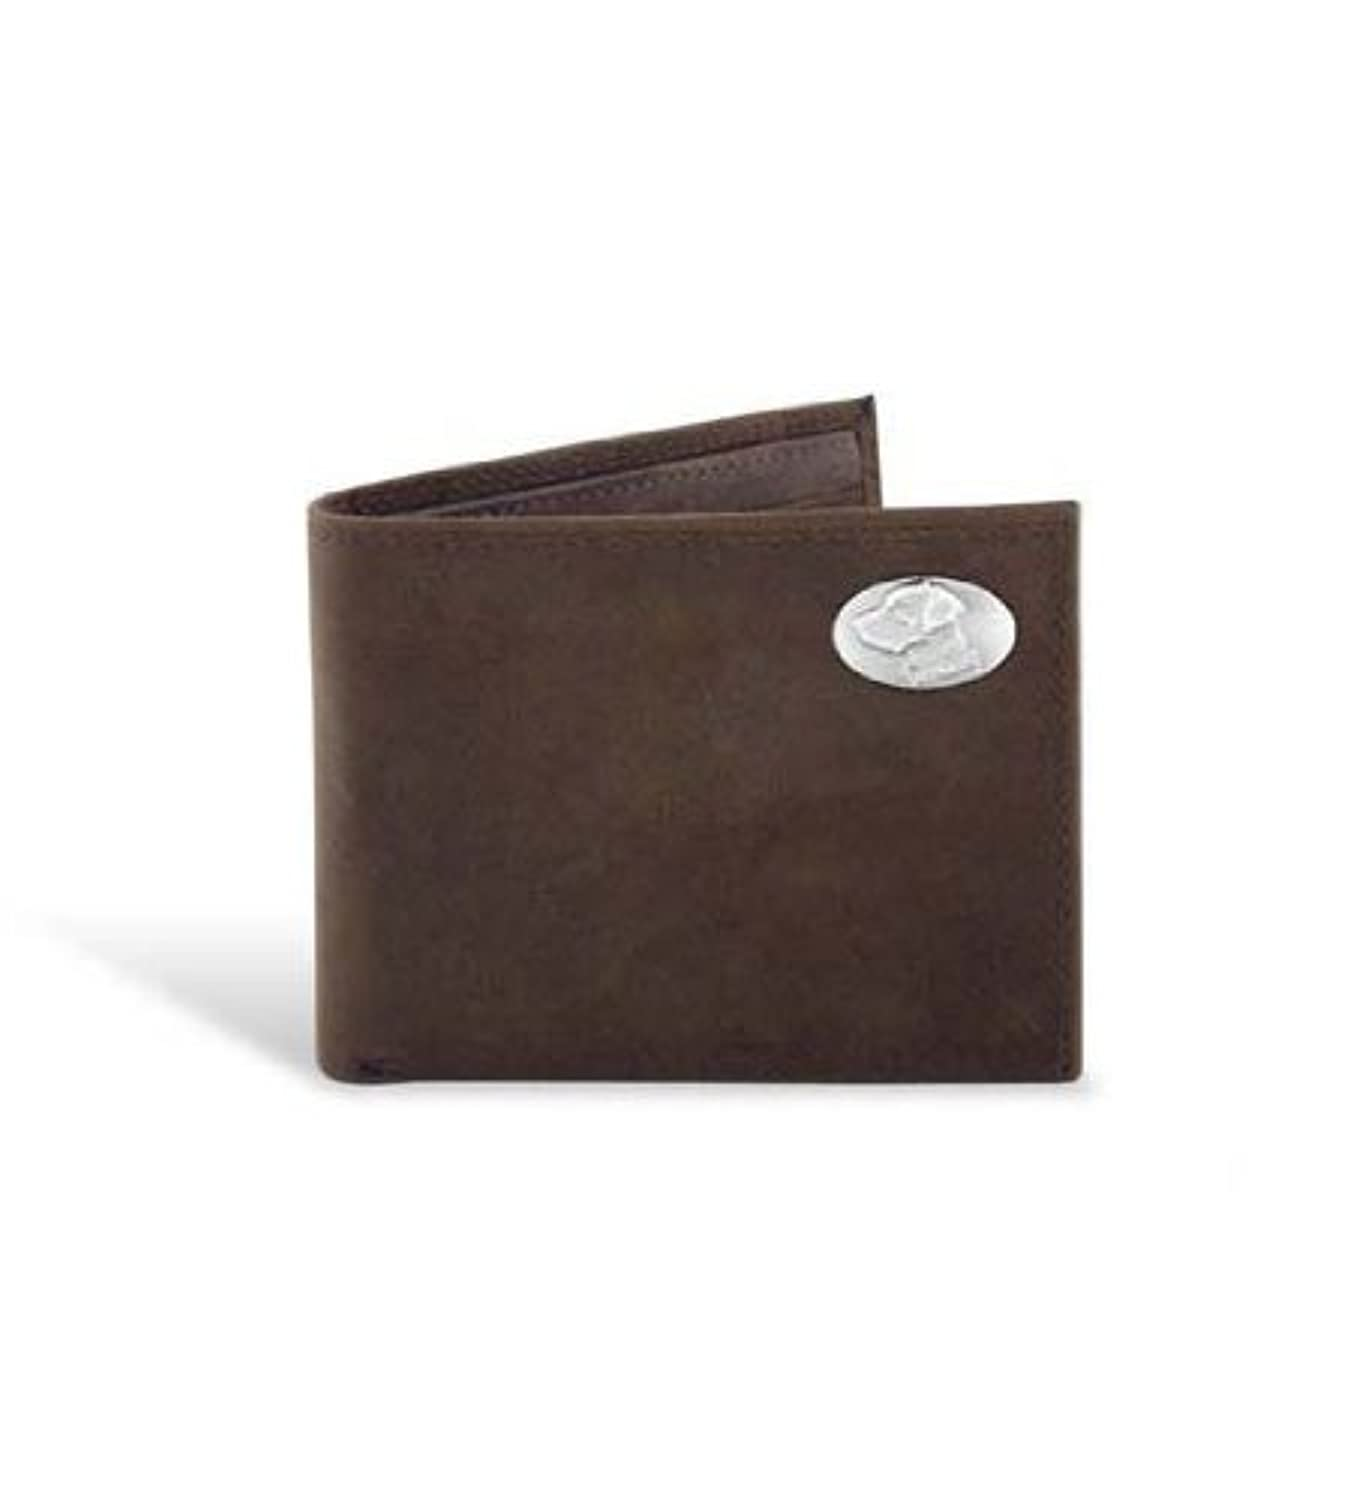 Labrador - Leather Crazy Horse Brown Passcase Wallet ktqmsf1293707